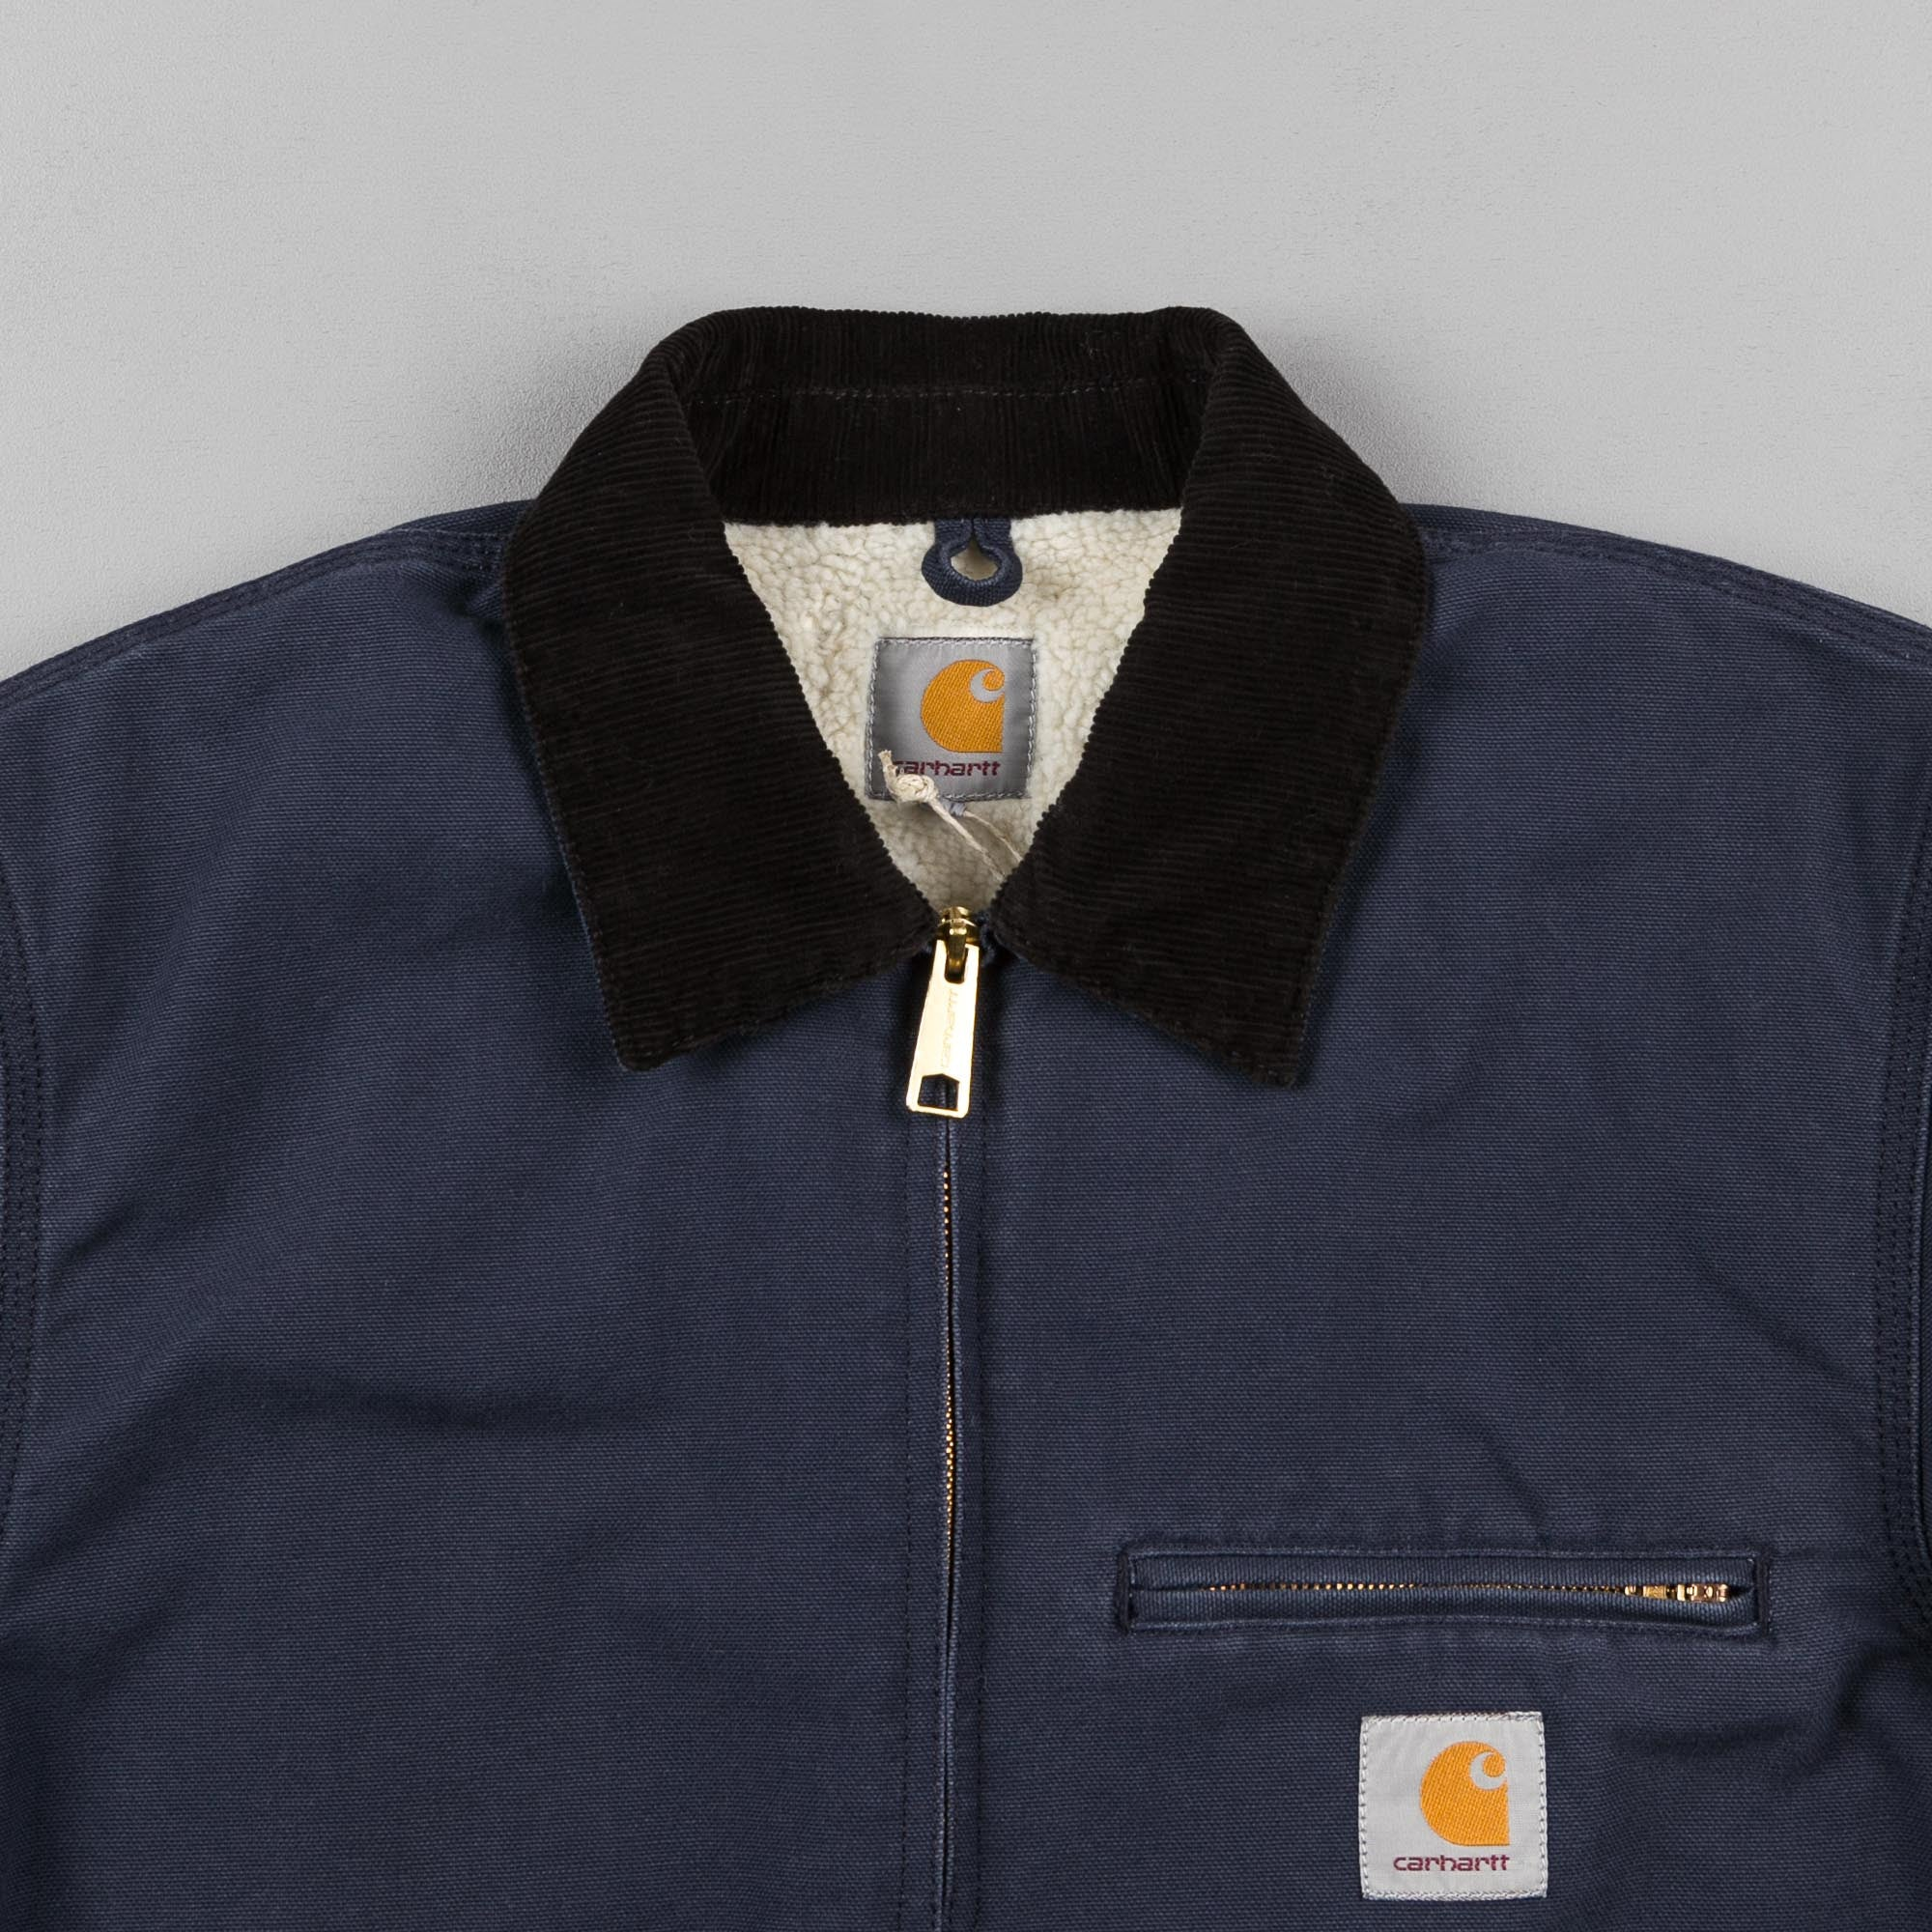 Carhartt Detroit Jacket - Navy / Black